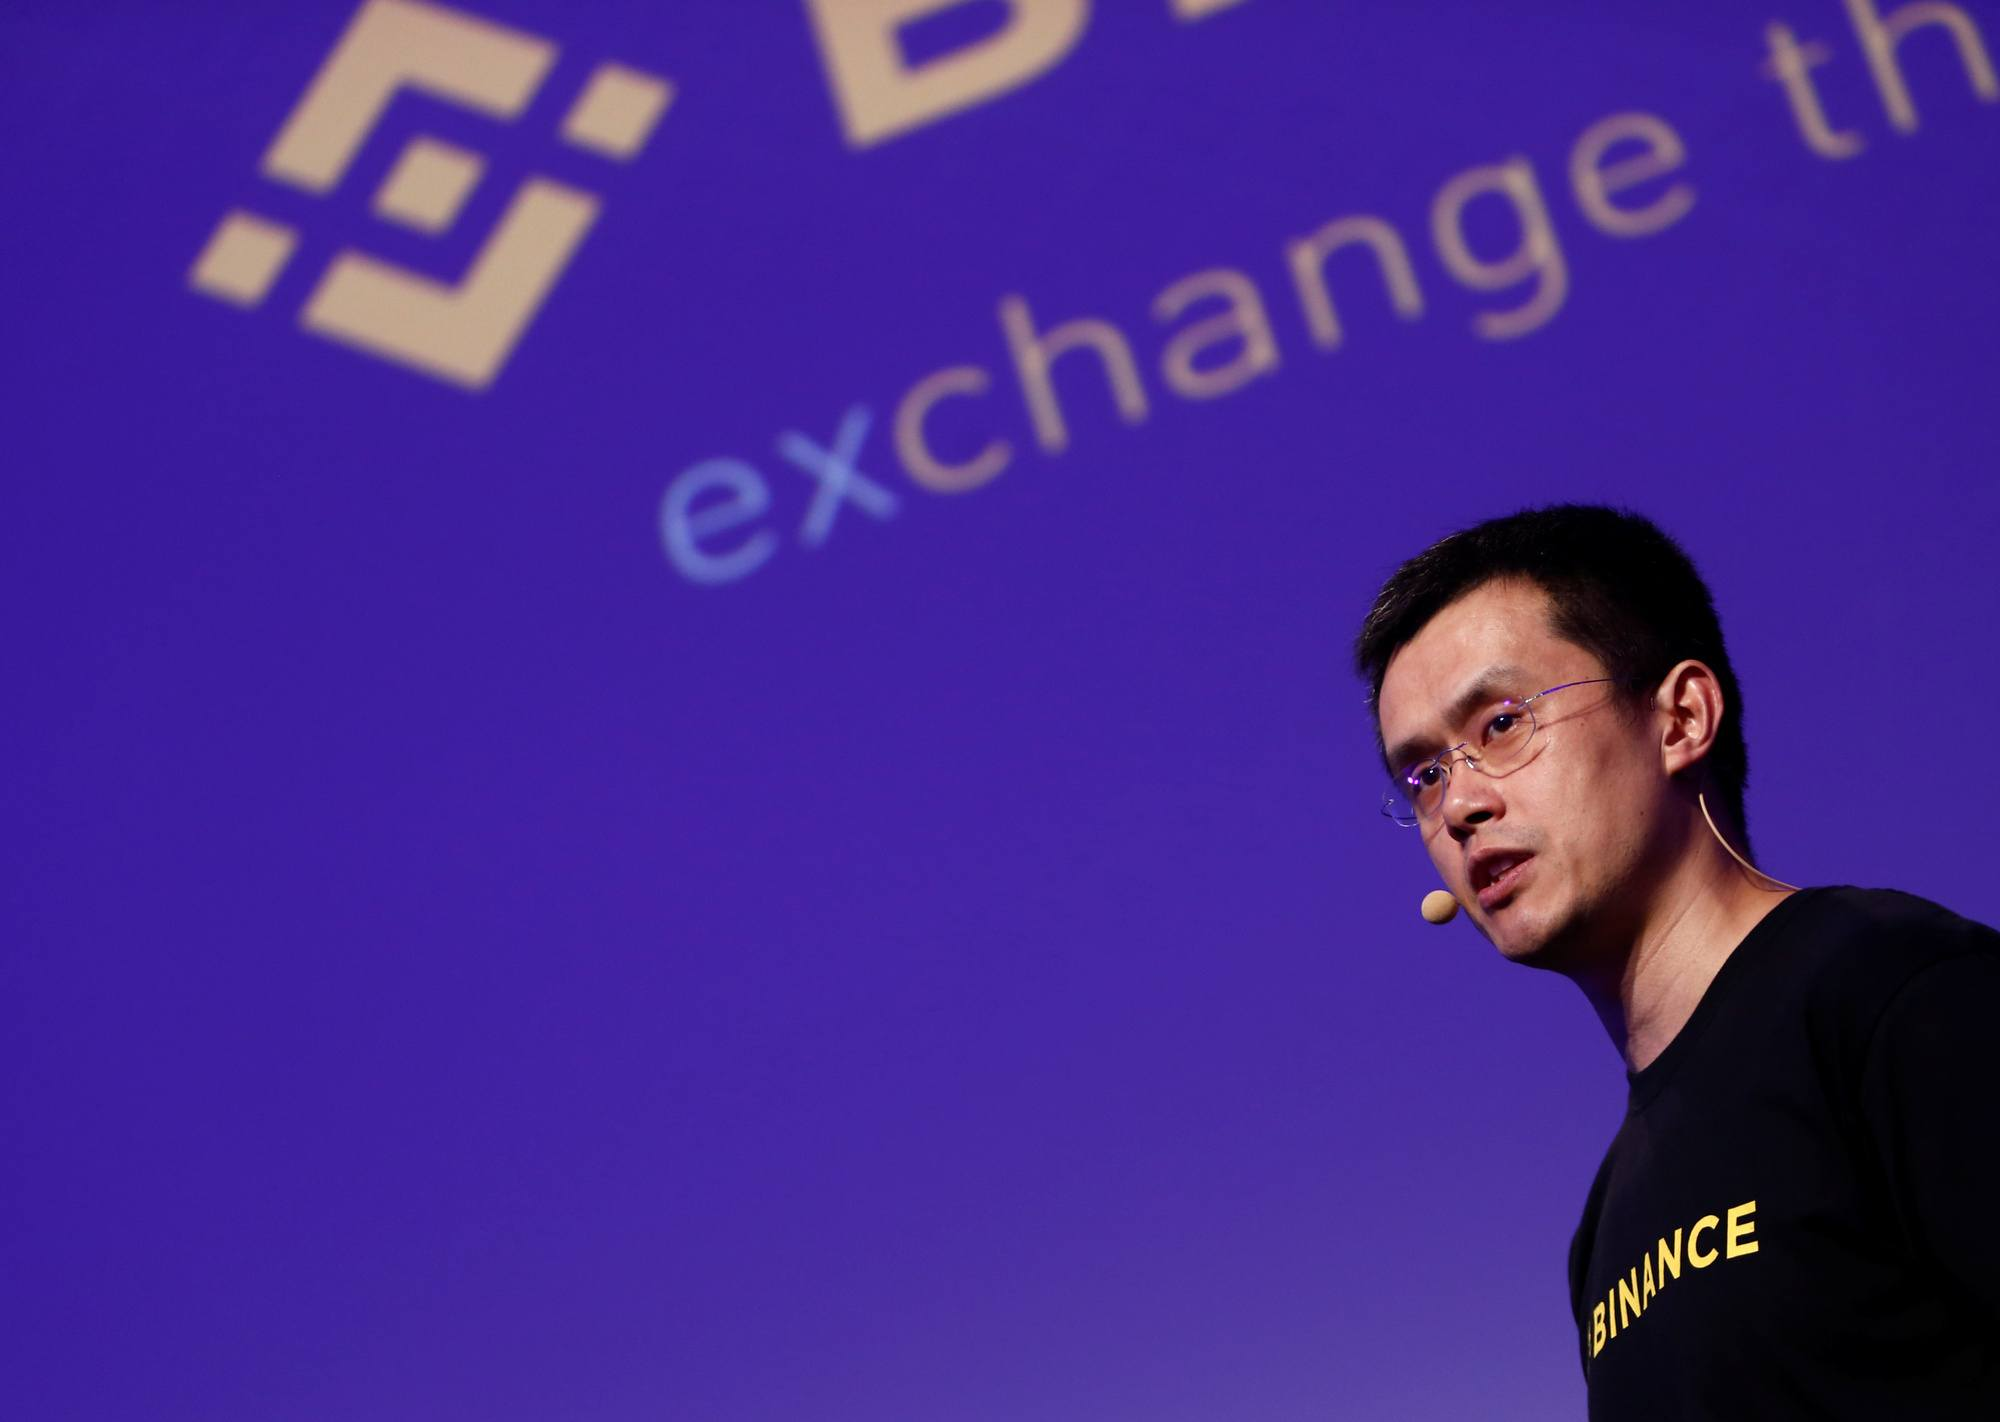 Changpeng Zhao Binance NTB - Crypto Industry Poised To Surge By 1,000 Times, Says Binance CEO